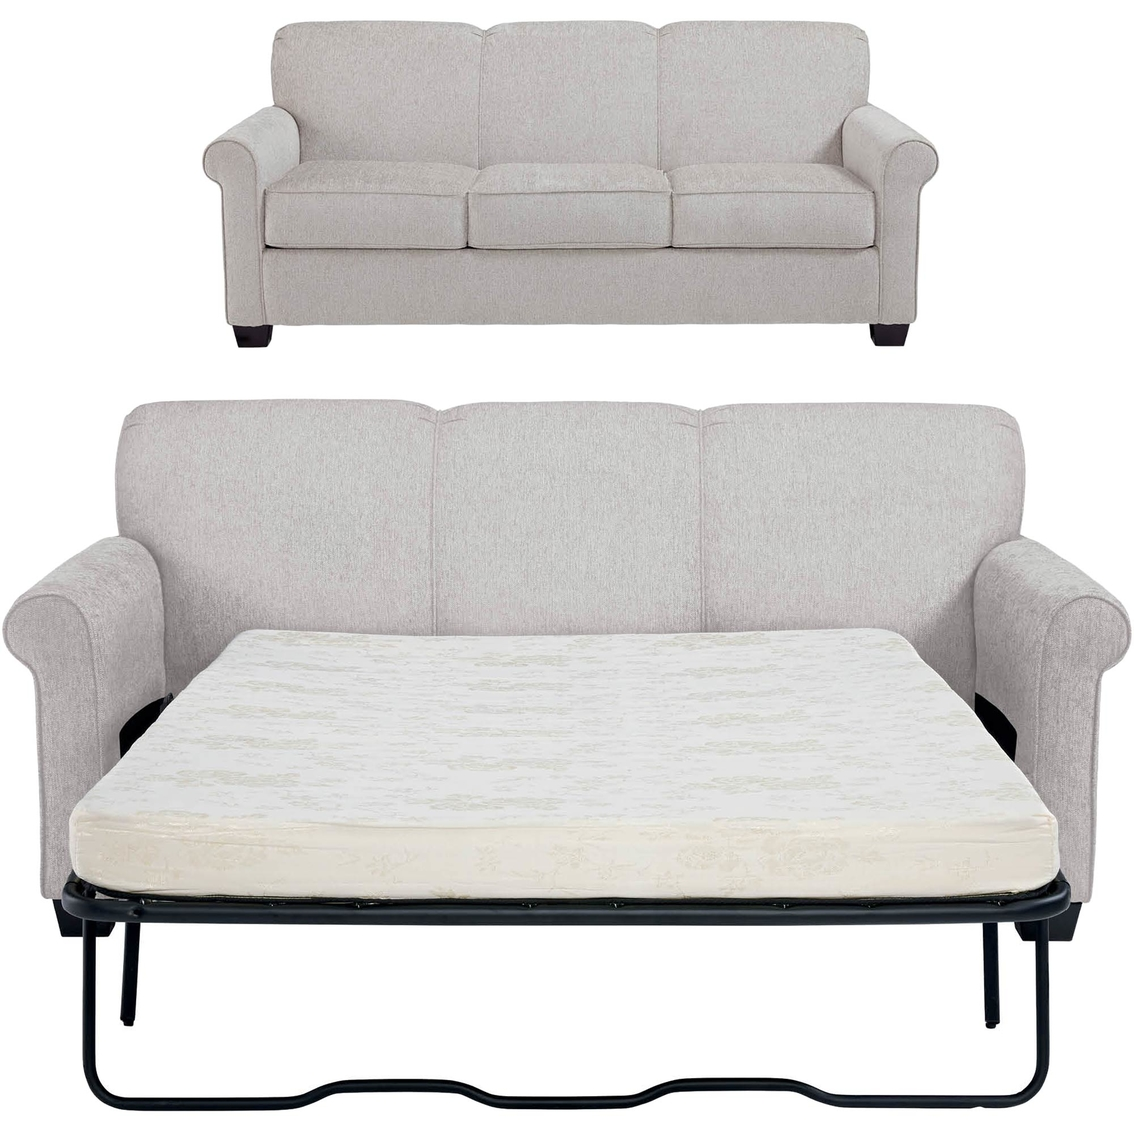 check out fd0b4 8bf71 Signature Design By Ashley Cansler Full Sofa Sleeper | Sofas ...